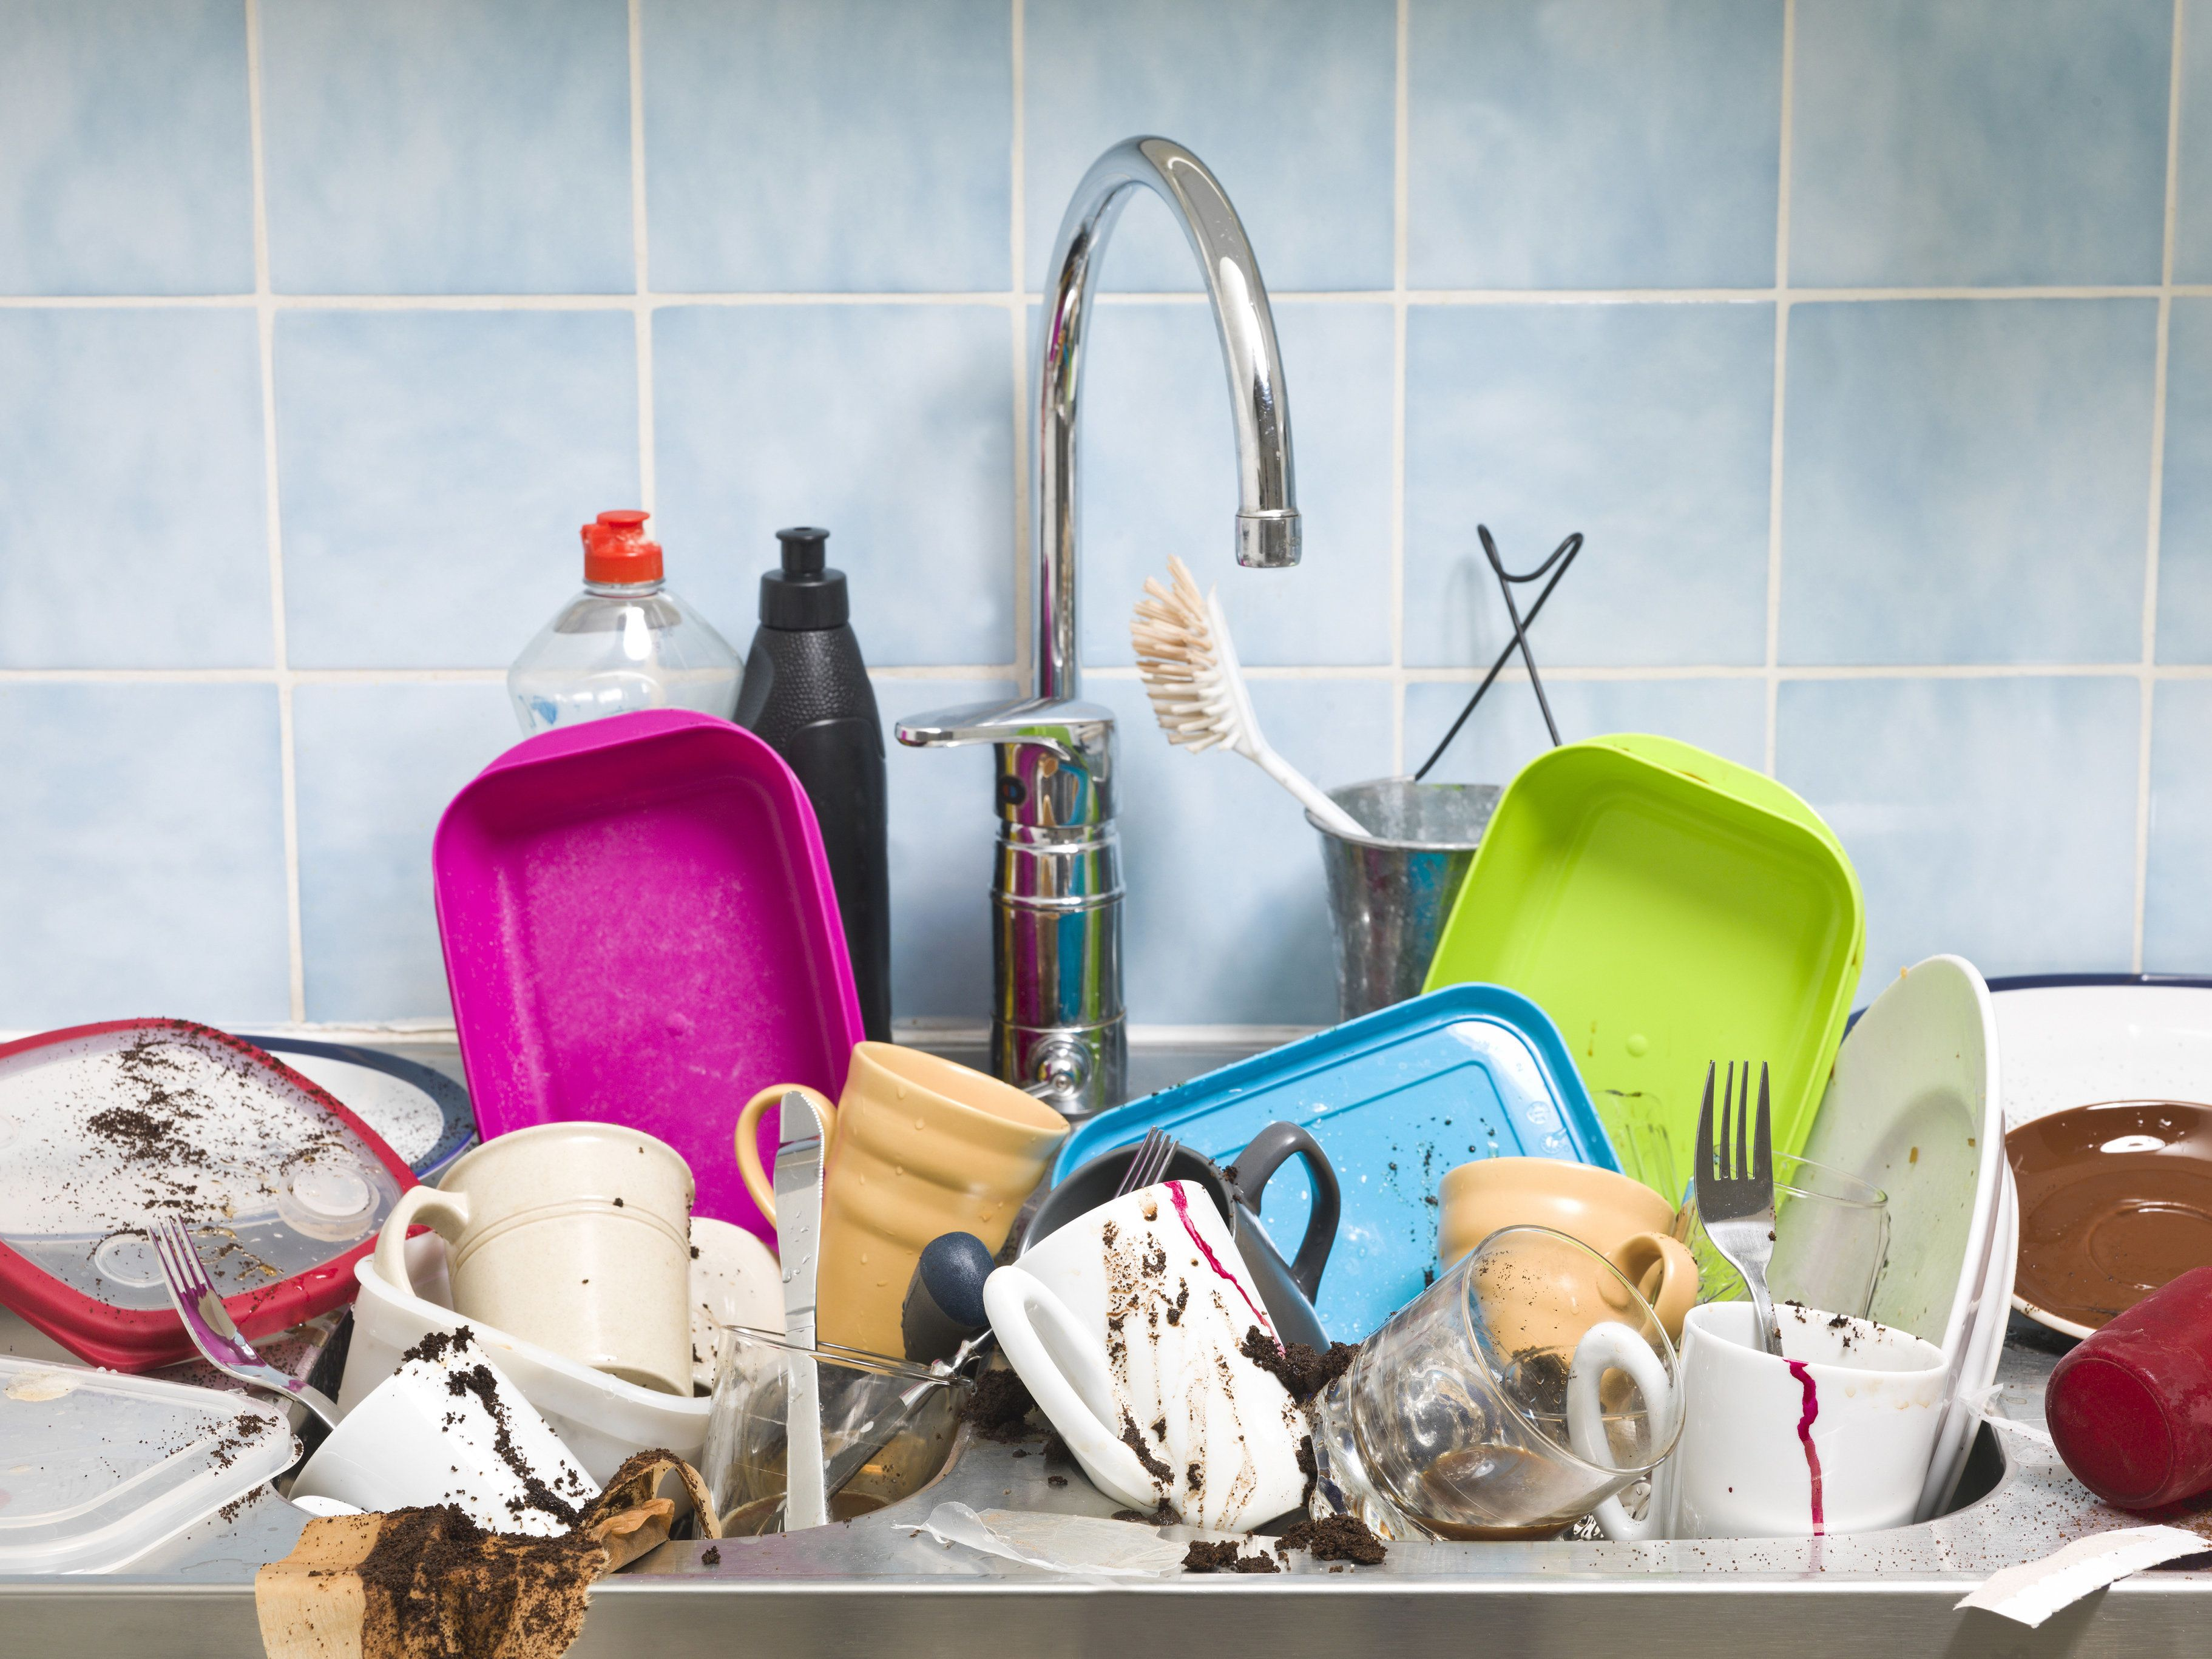 How Clean Is Your Kitchen? Take This Test To Find